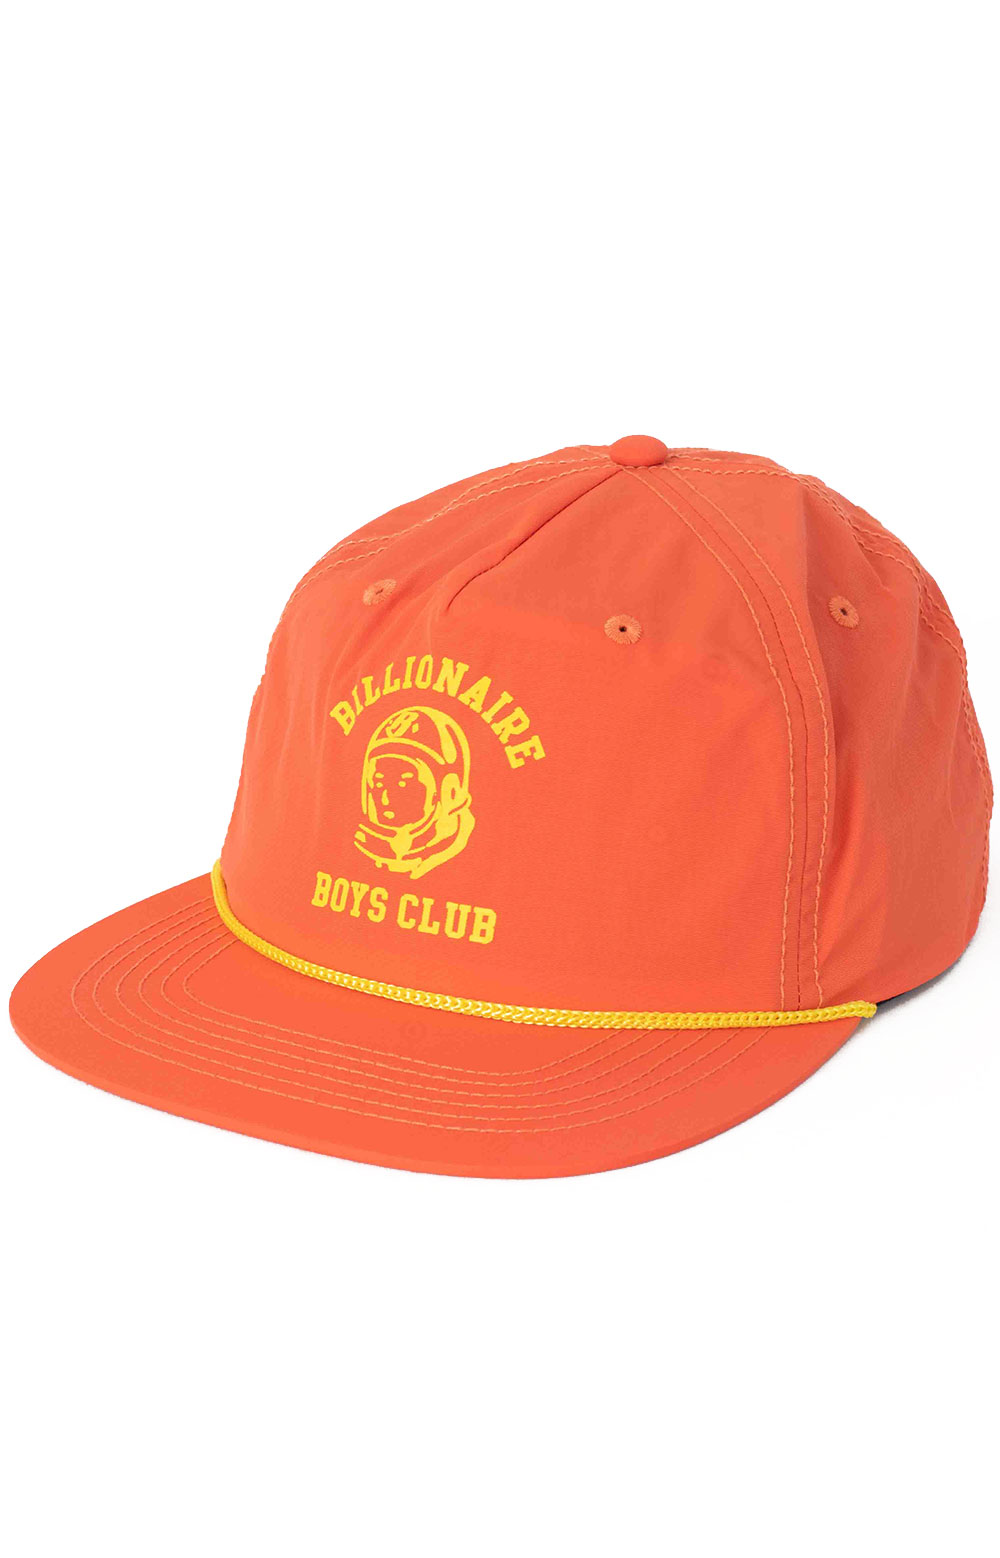 Clubhouse Snap-Back Hat - Hot Coral